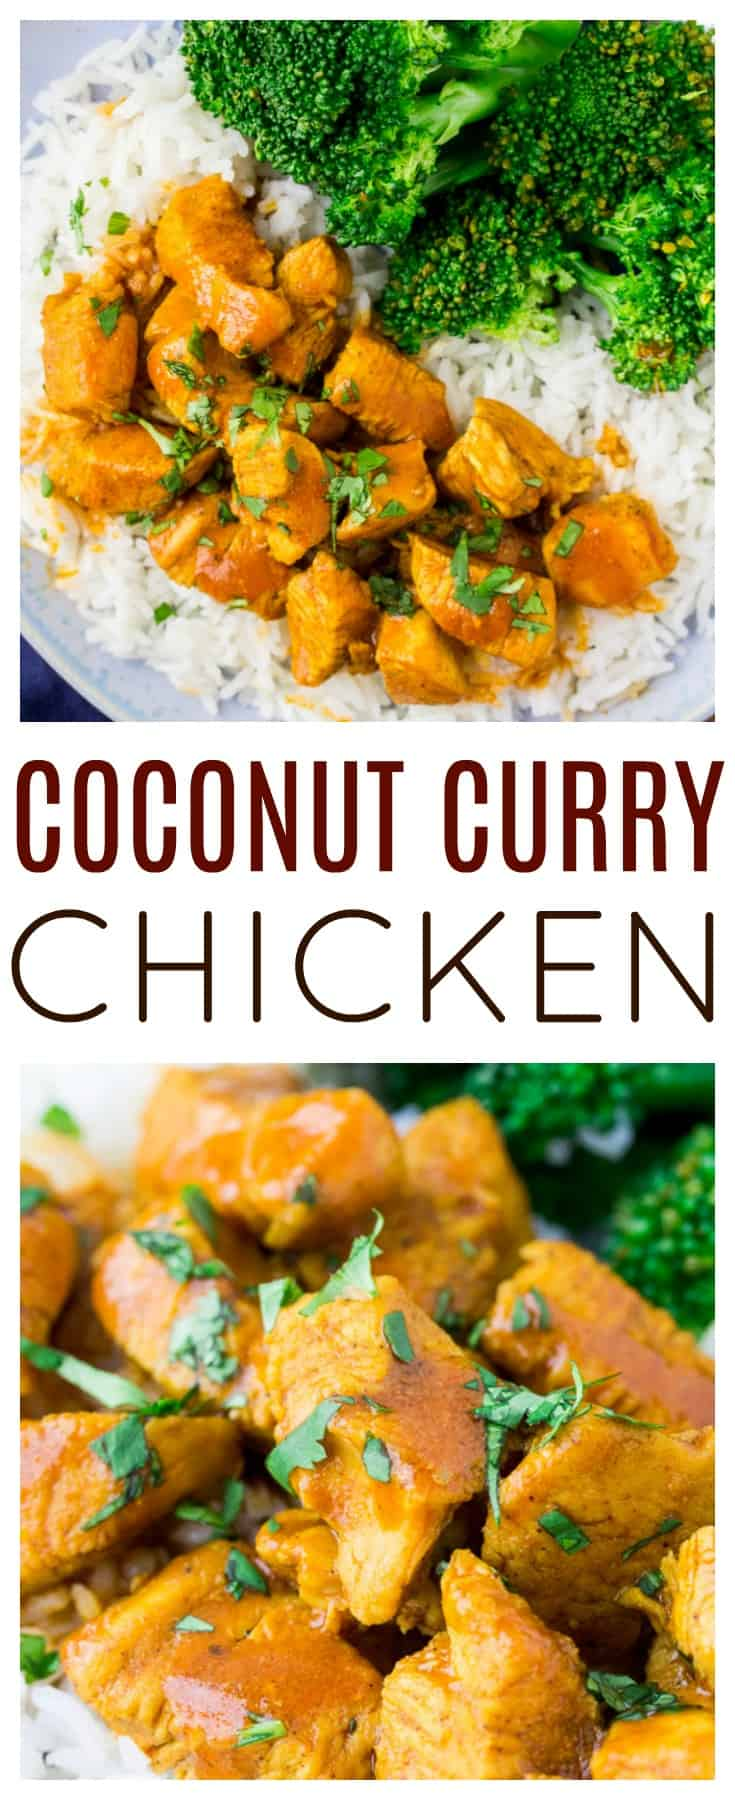 Coconut Curry Chicken is an easy to make main dish recipe that is loaded with sweet coconut and spicy curry flavors! Add some veggies and make it a complete meal! This curry recipe is also gluten free and low carb when eaten on it's own! | #dlbrecipes #currychicken #coconutcurry #chickenrecipe #glutenfree #lowcarb